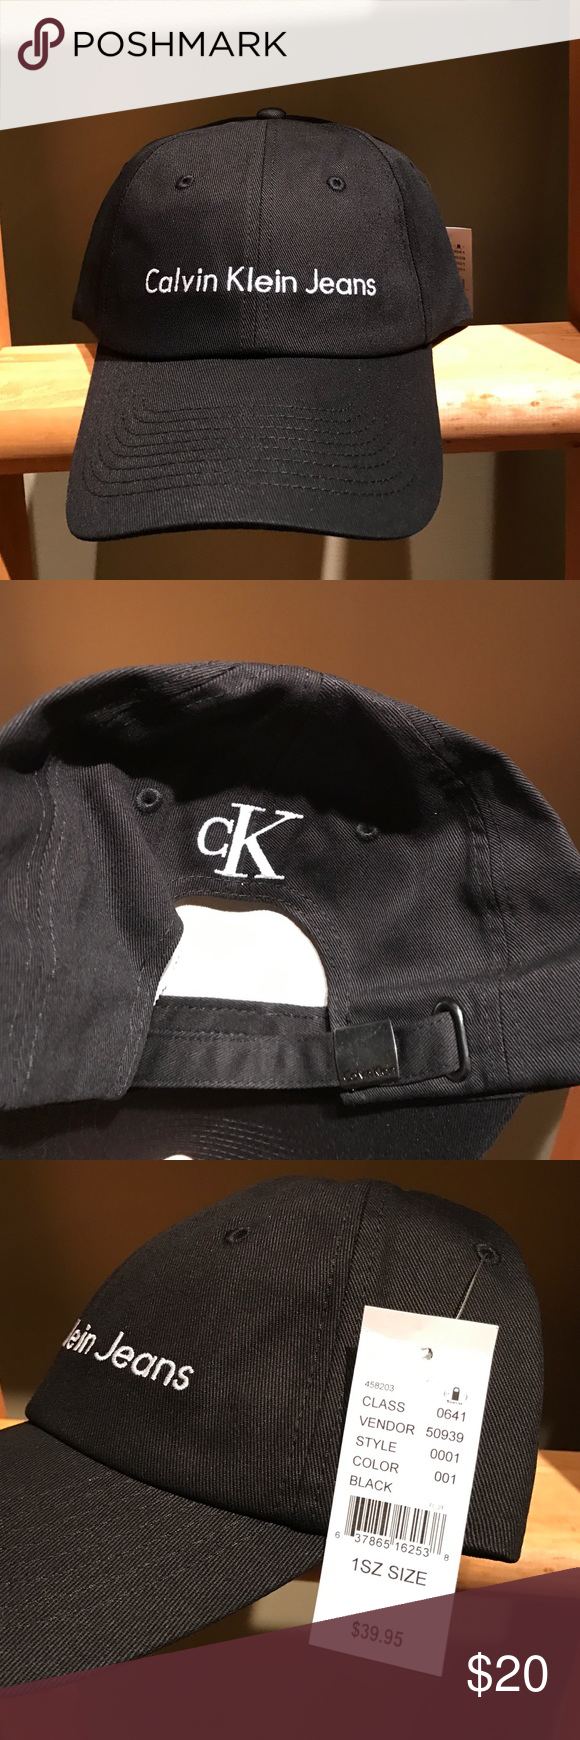 Calvin Klein holiday collection dad hat UNISEX NEW WITH TAGS it s a dad hat.   mycalvins it s too classy for you. I might just keep it. f0e1648d8ed